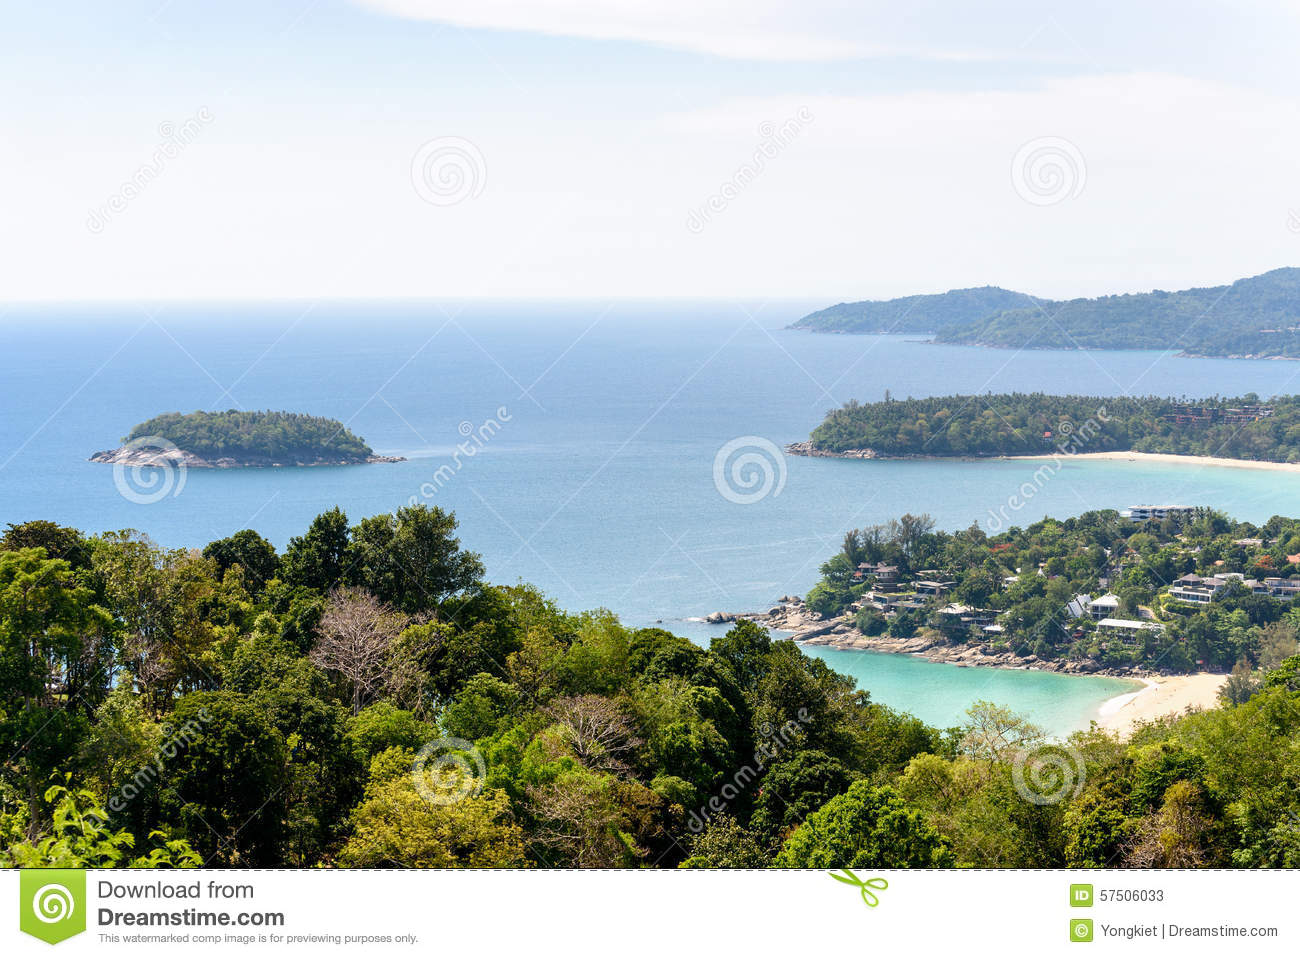 Hat Kata Karon Viewpoint In Phuket Island Stock Photo ...